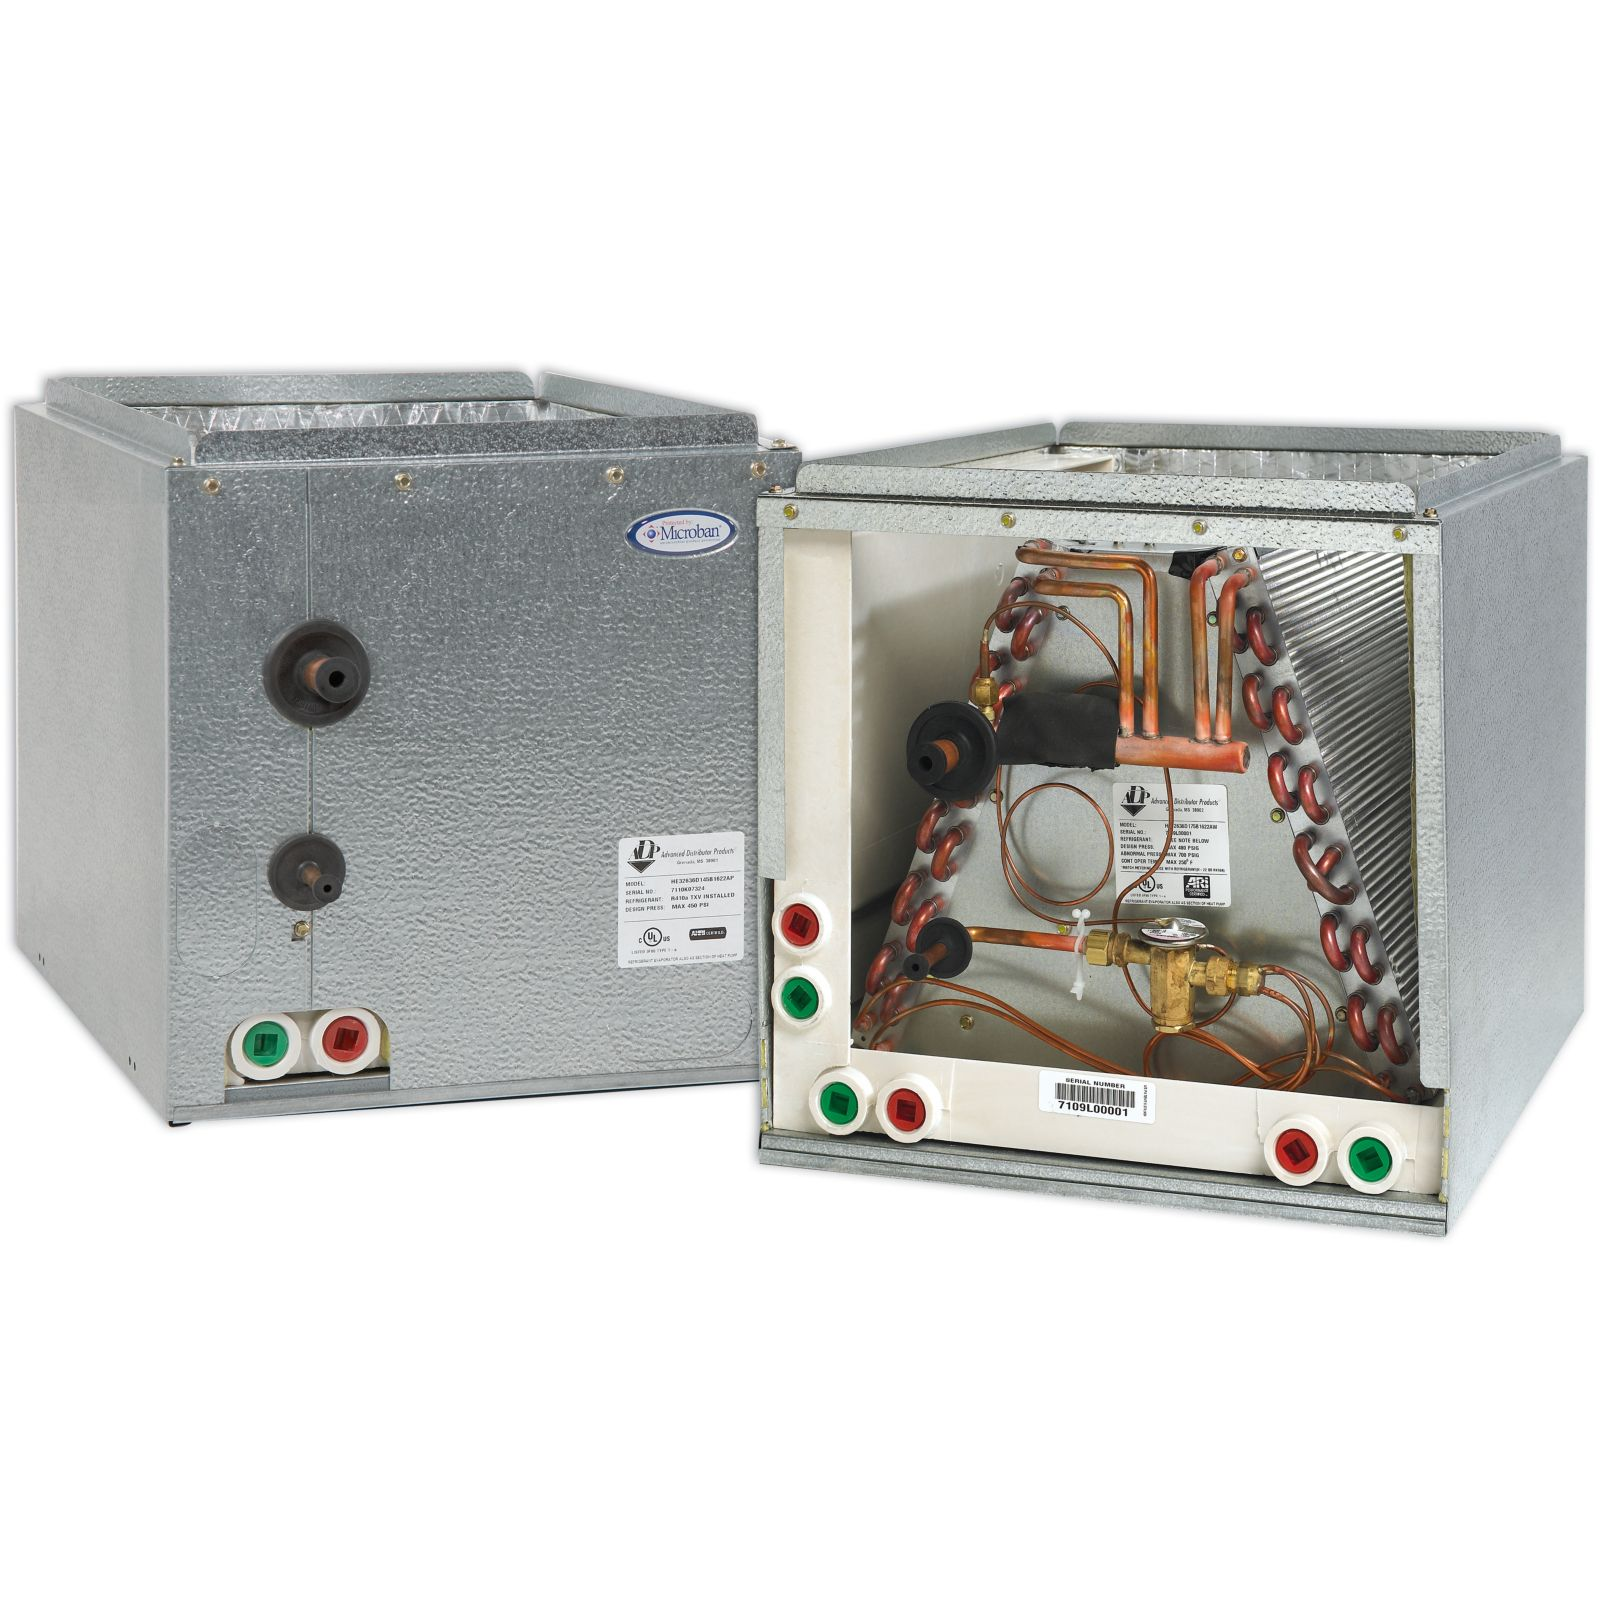 "ADP RE50660D210B2705AP - HE Series Cased Evaporator Coil 5 Ton Copper Left Hand, R410A, 21"" X 21"" X 27.5"""